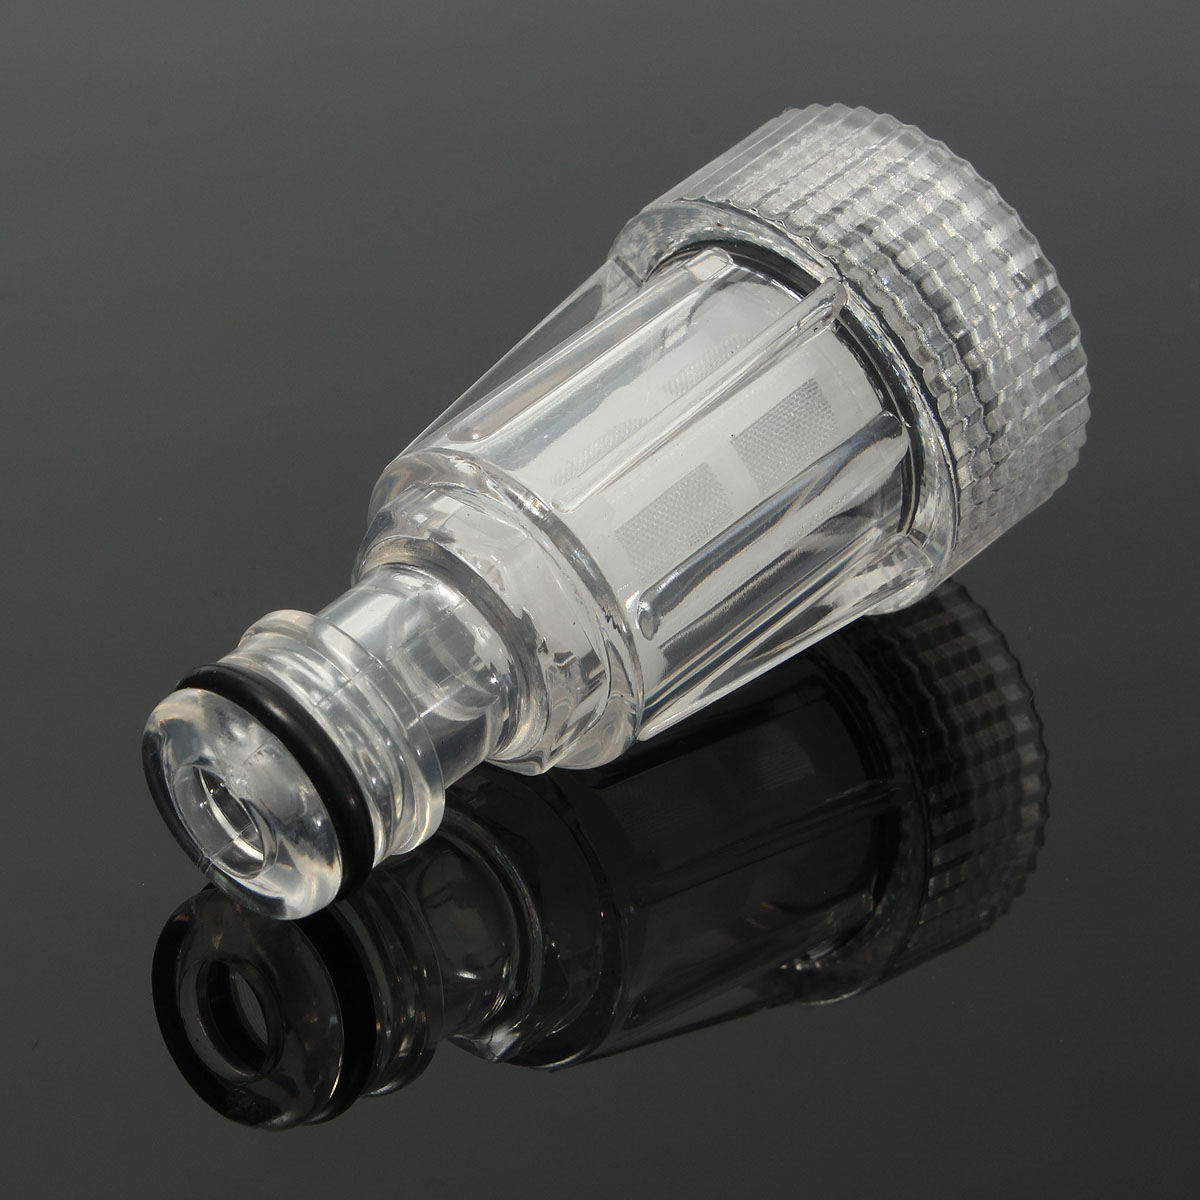 Car Washing Machine Water Filter High-pressure Connection Fitting For Karcher K2-K7 Series Pressure Washers(China)